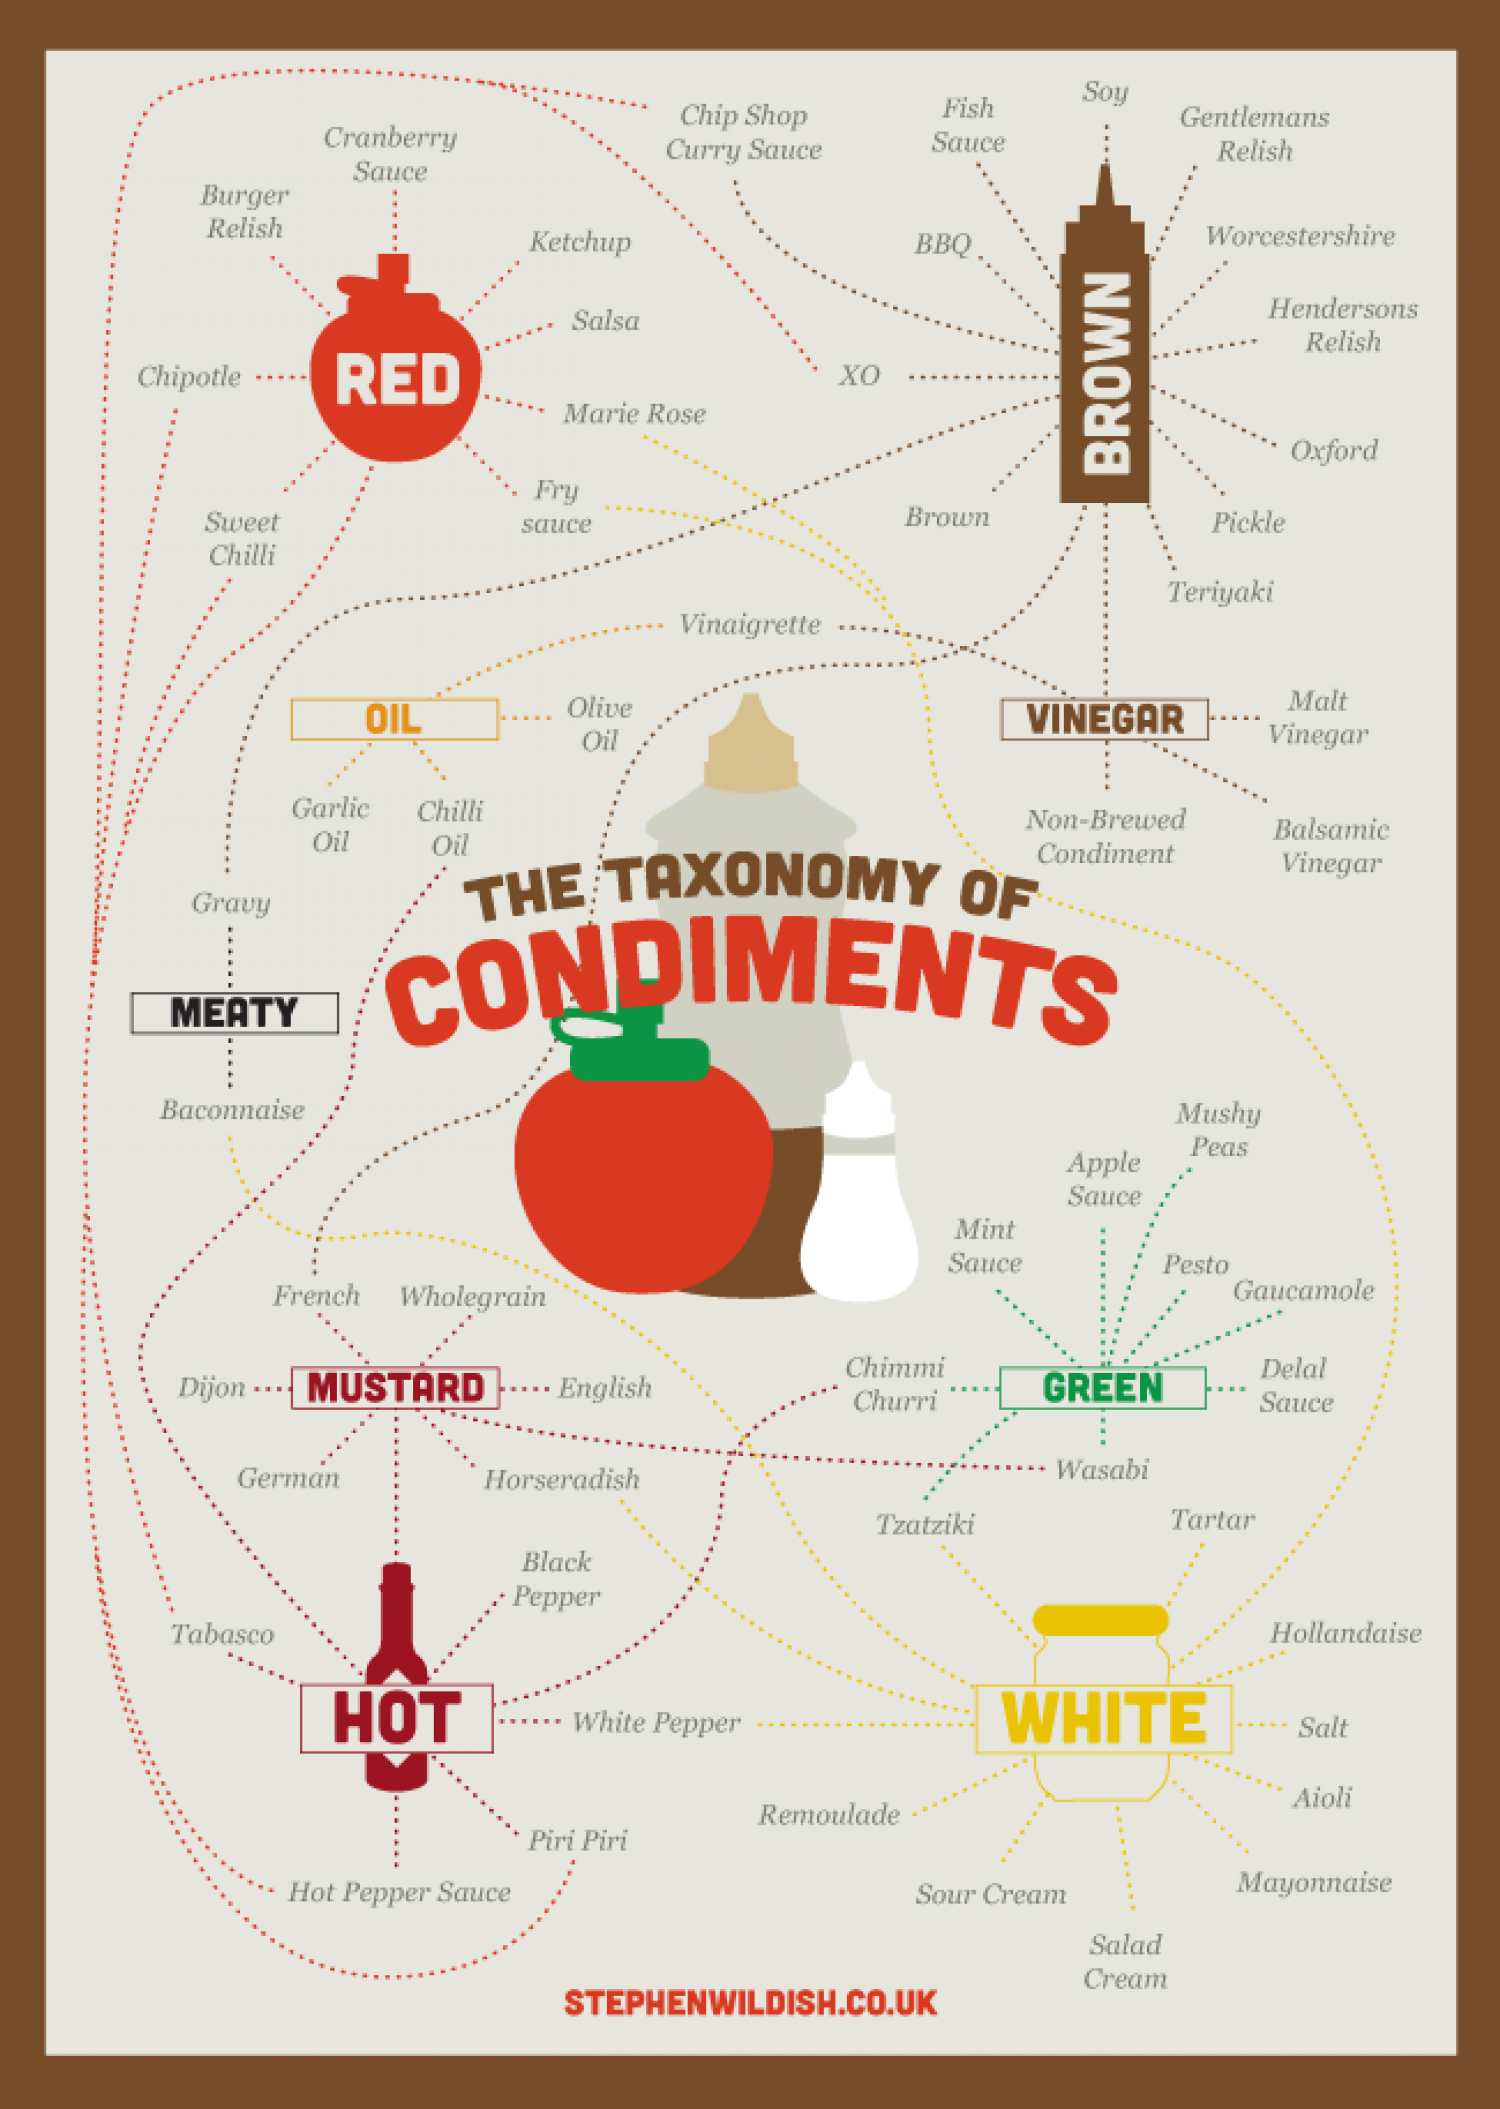 Taxonomy of condiments Infographic